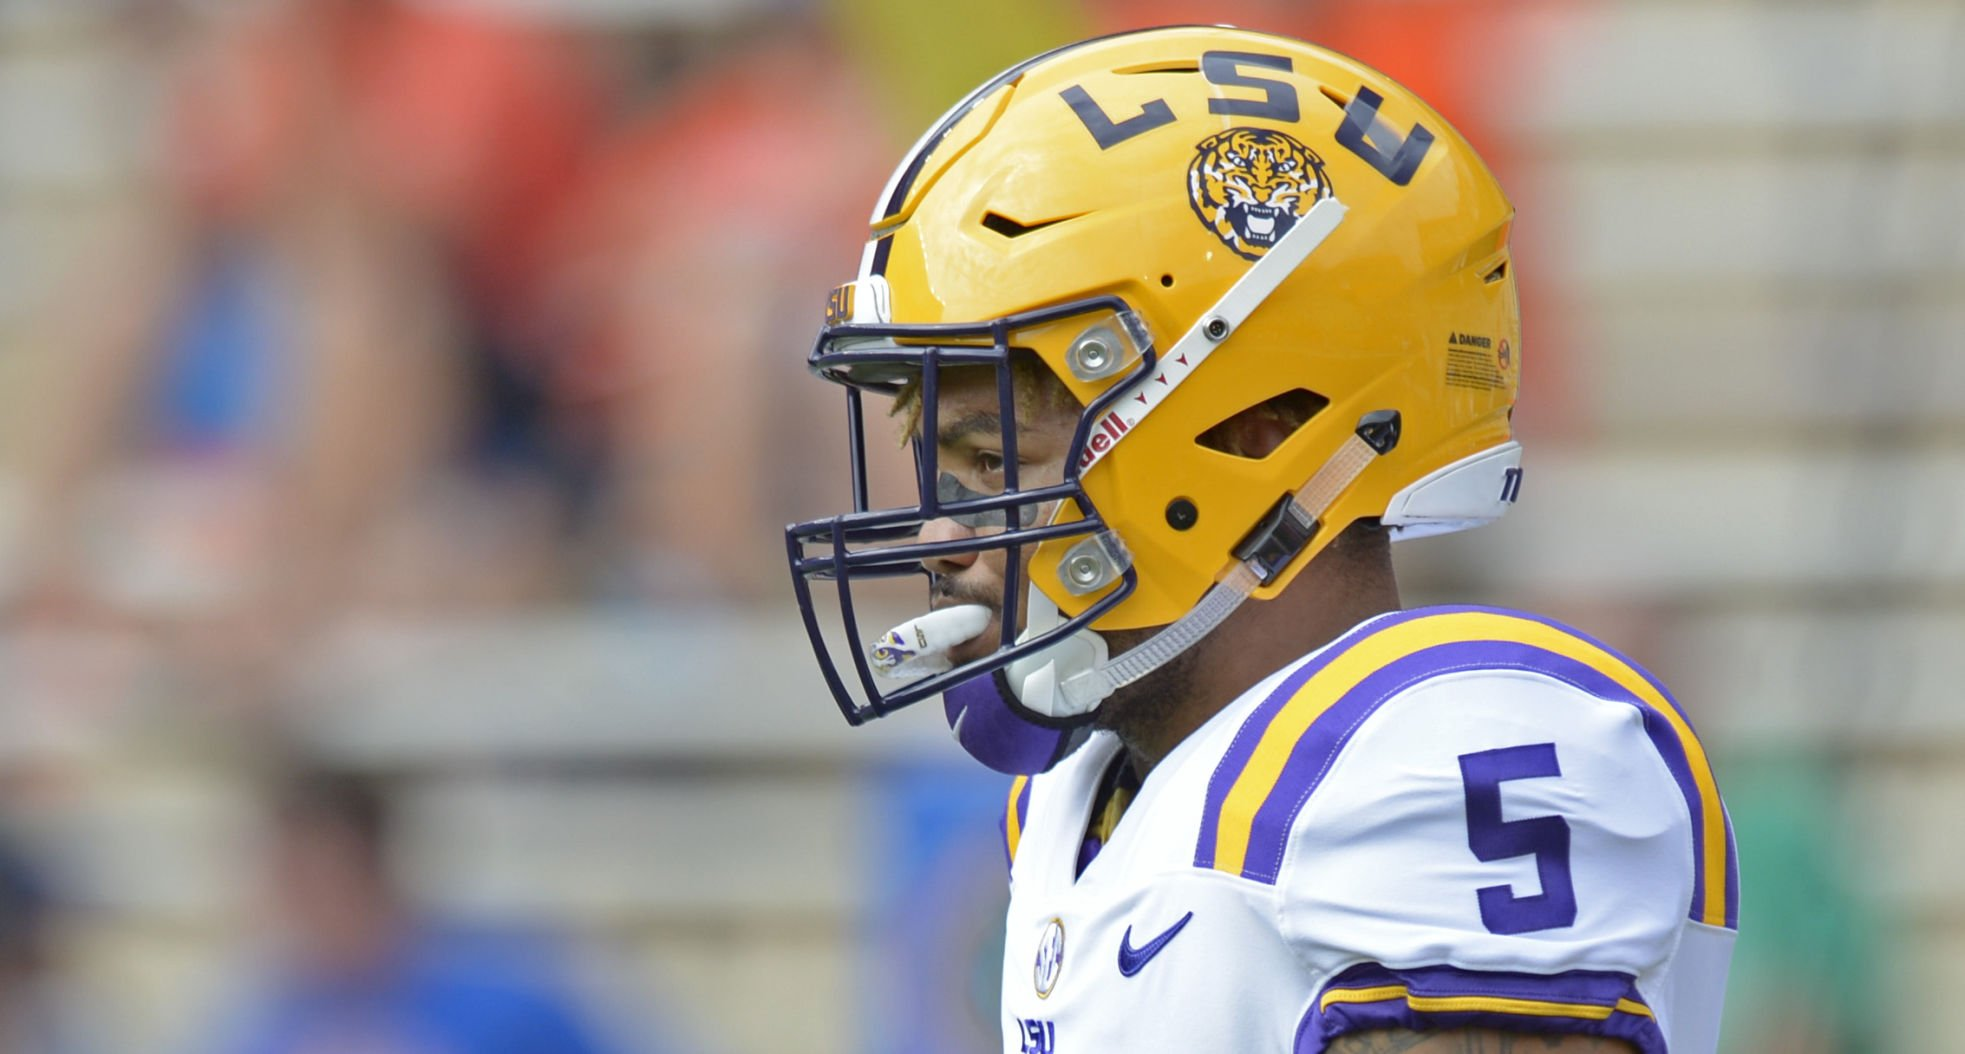 5 things we learned from LSU's upset of Florida